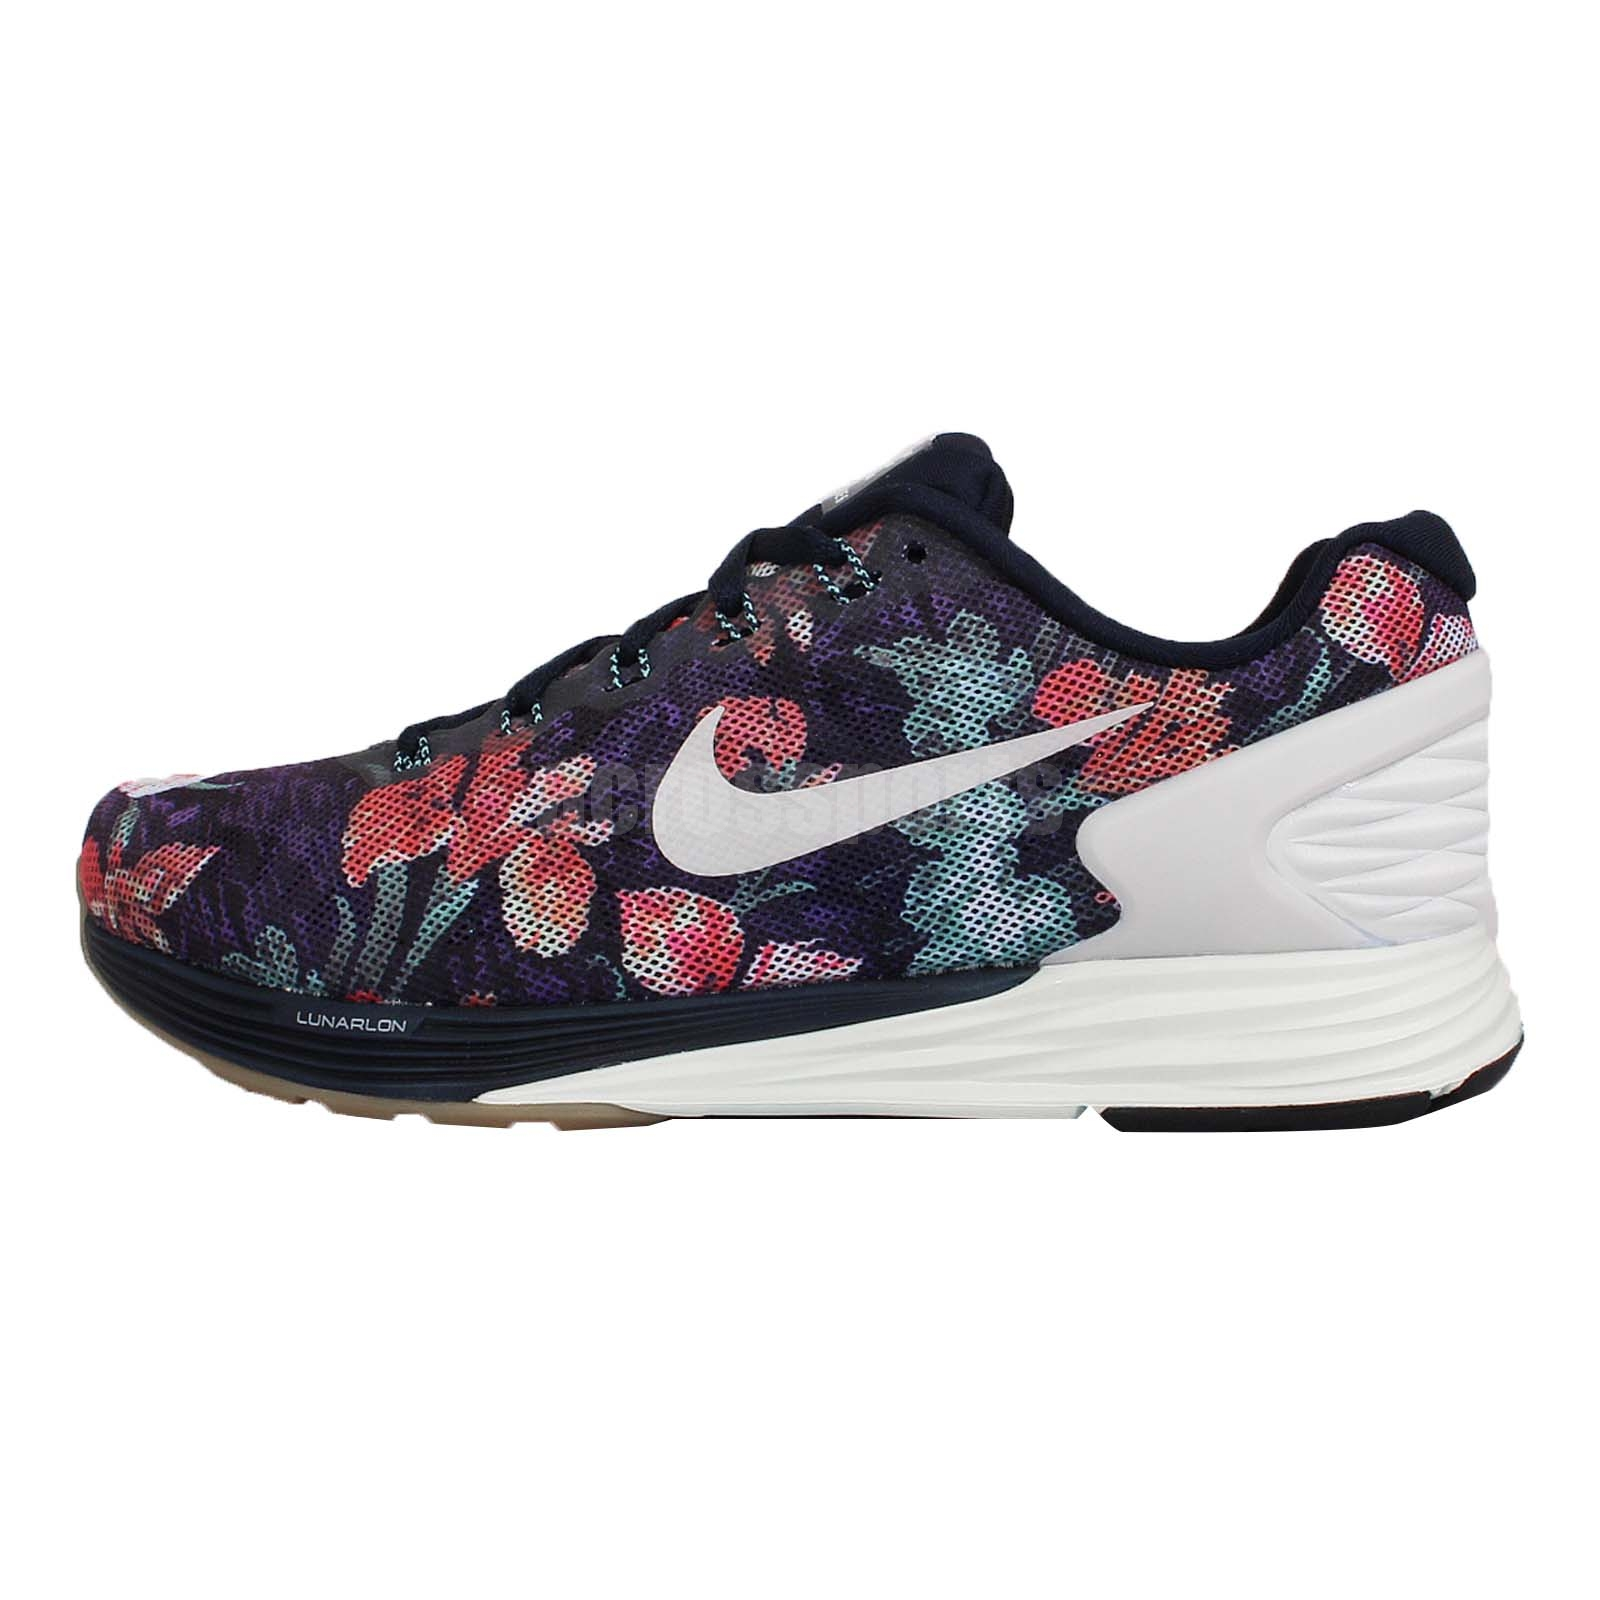 wmns nike lunarglide 6 photosynth floral photosynthesis